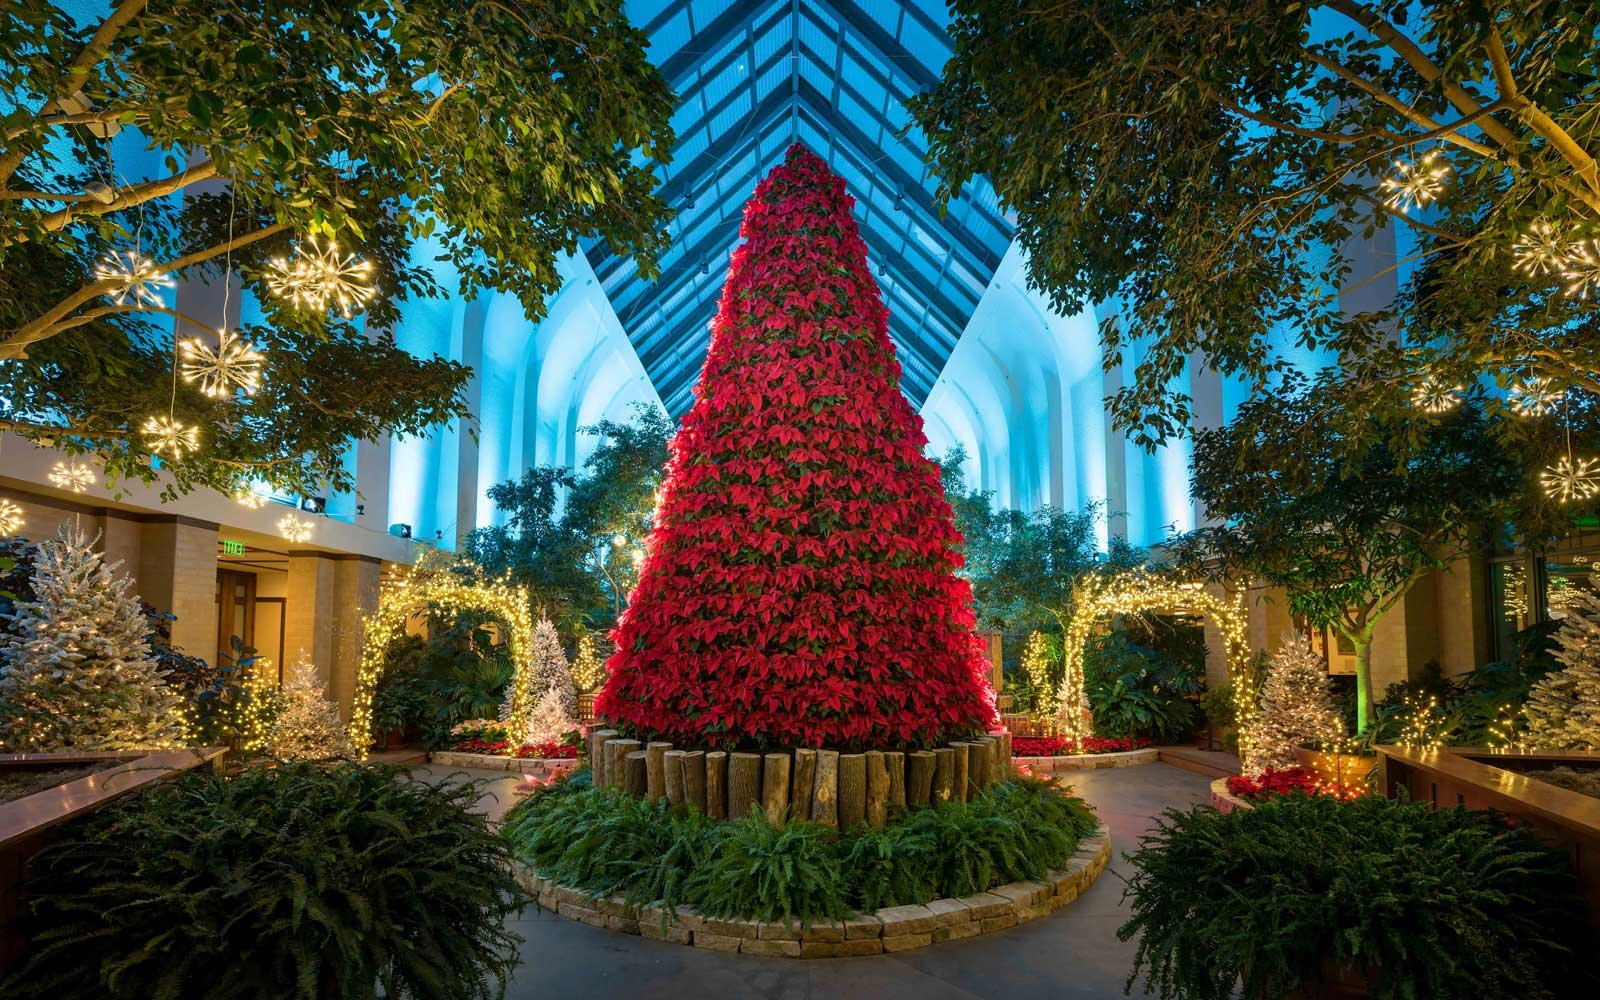 poinsettia-christmas-tree-omaha-tree1216.jpg